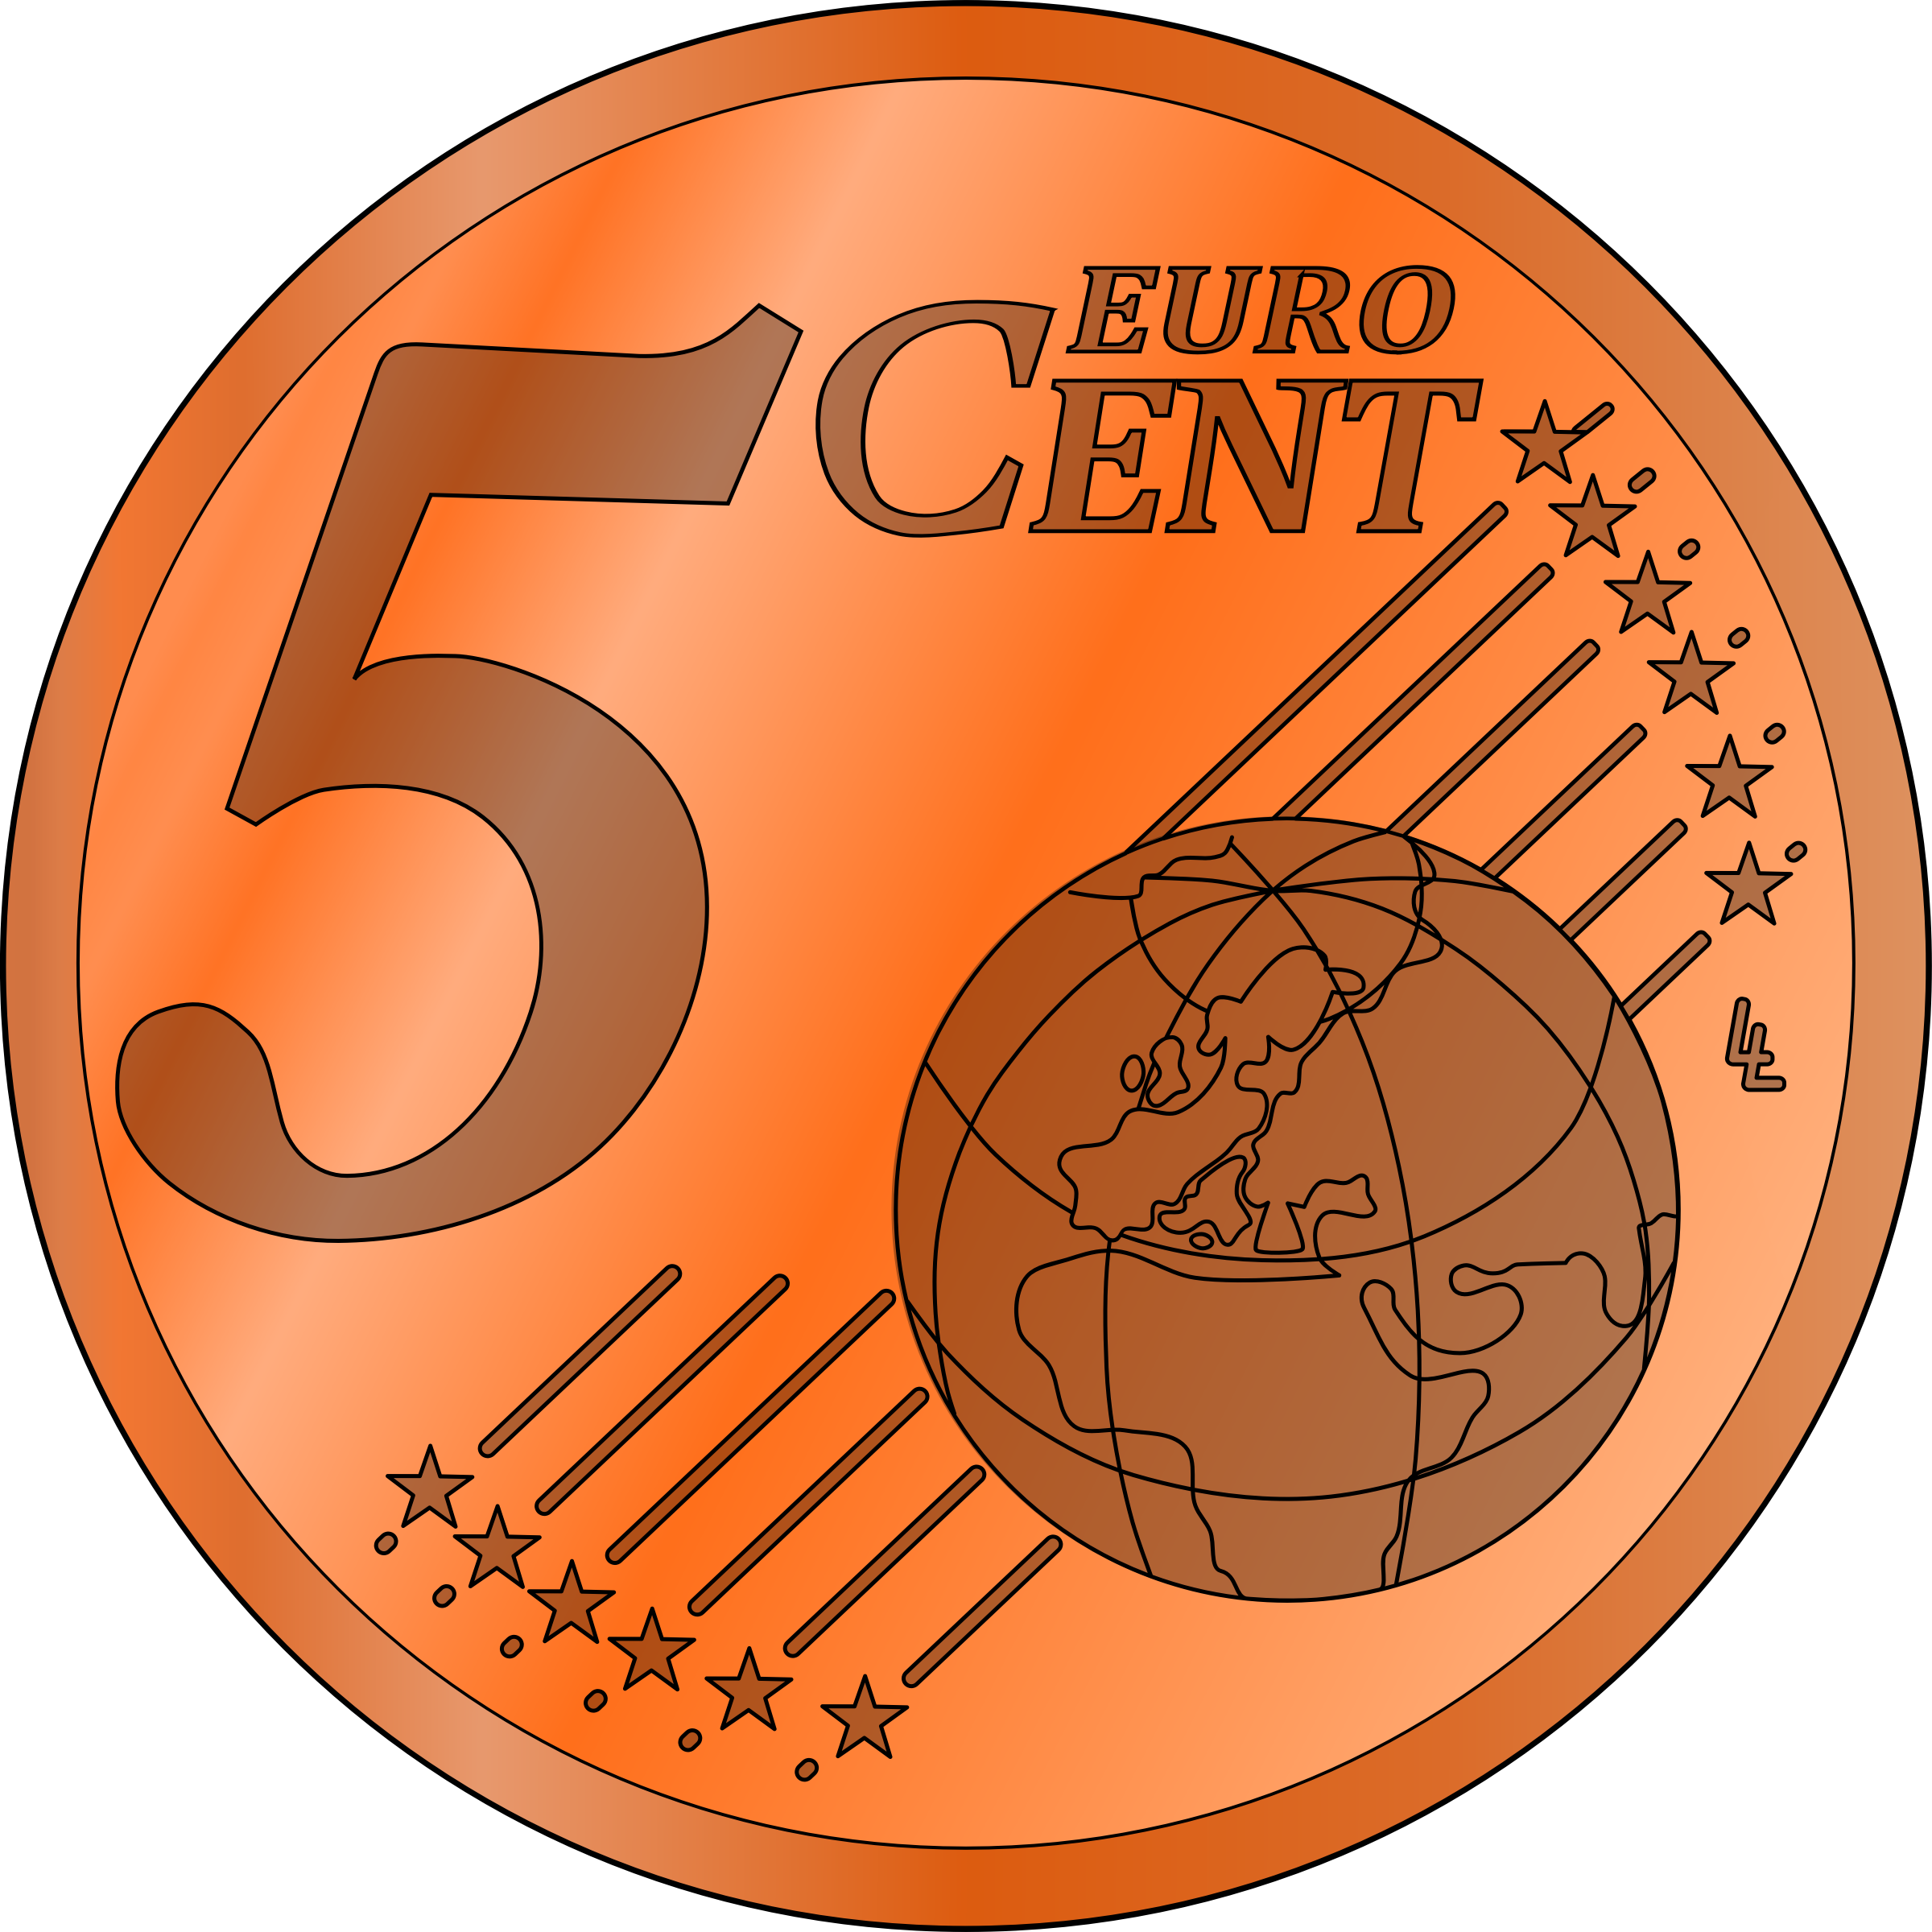 Pennies clipart different kind. Five euro cent big